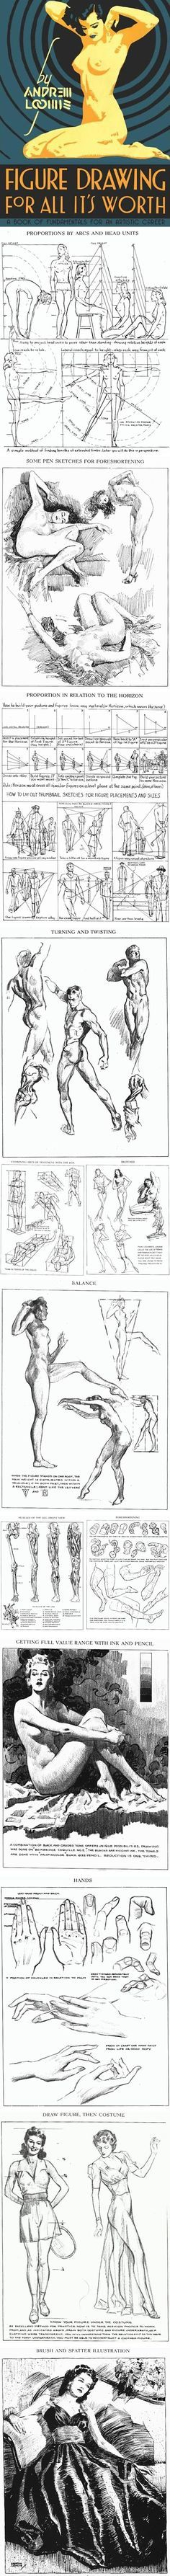 Figure Drawing for All it's Worth, Andrew Loomis. this book really is a must have along with 'creative illustration.'you never need look at another drawing instruction book, trust me.